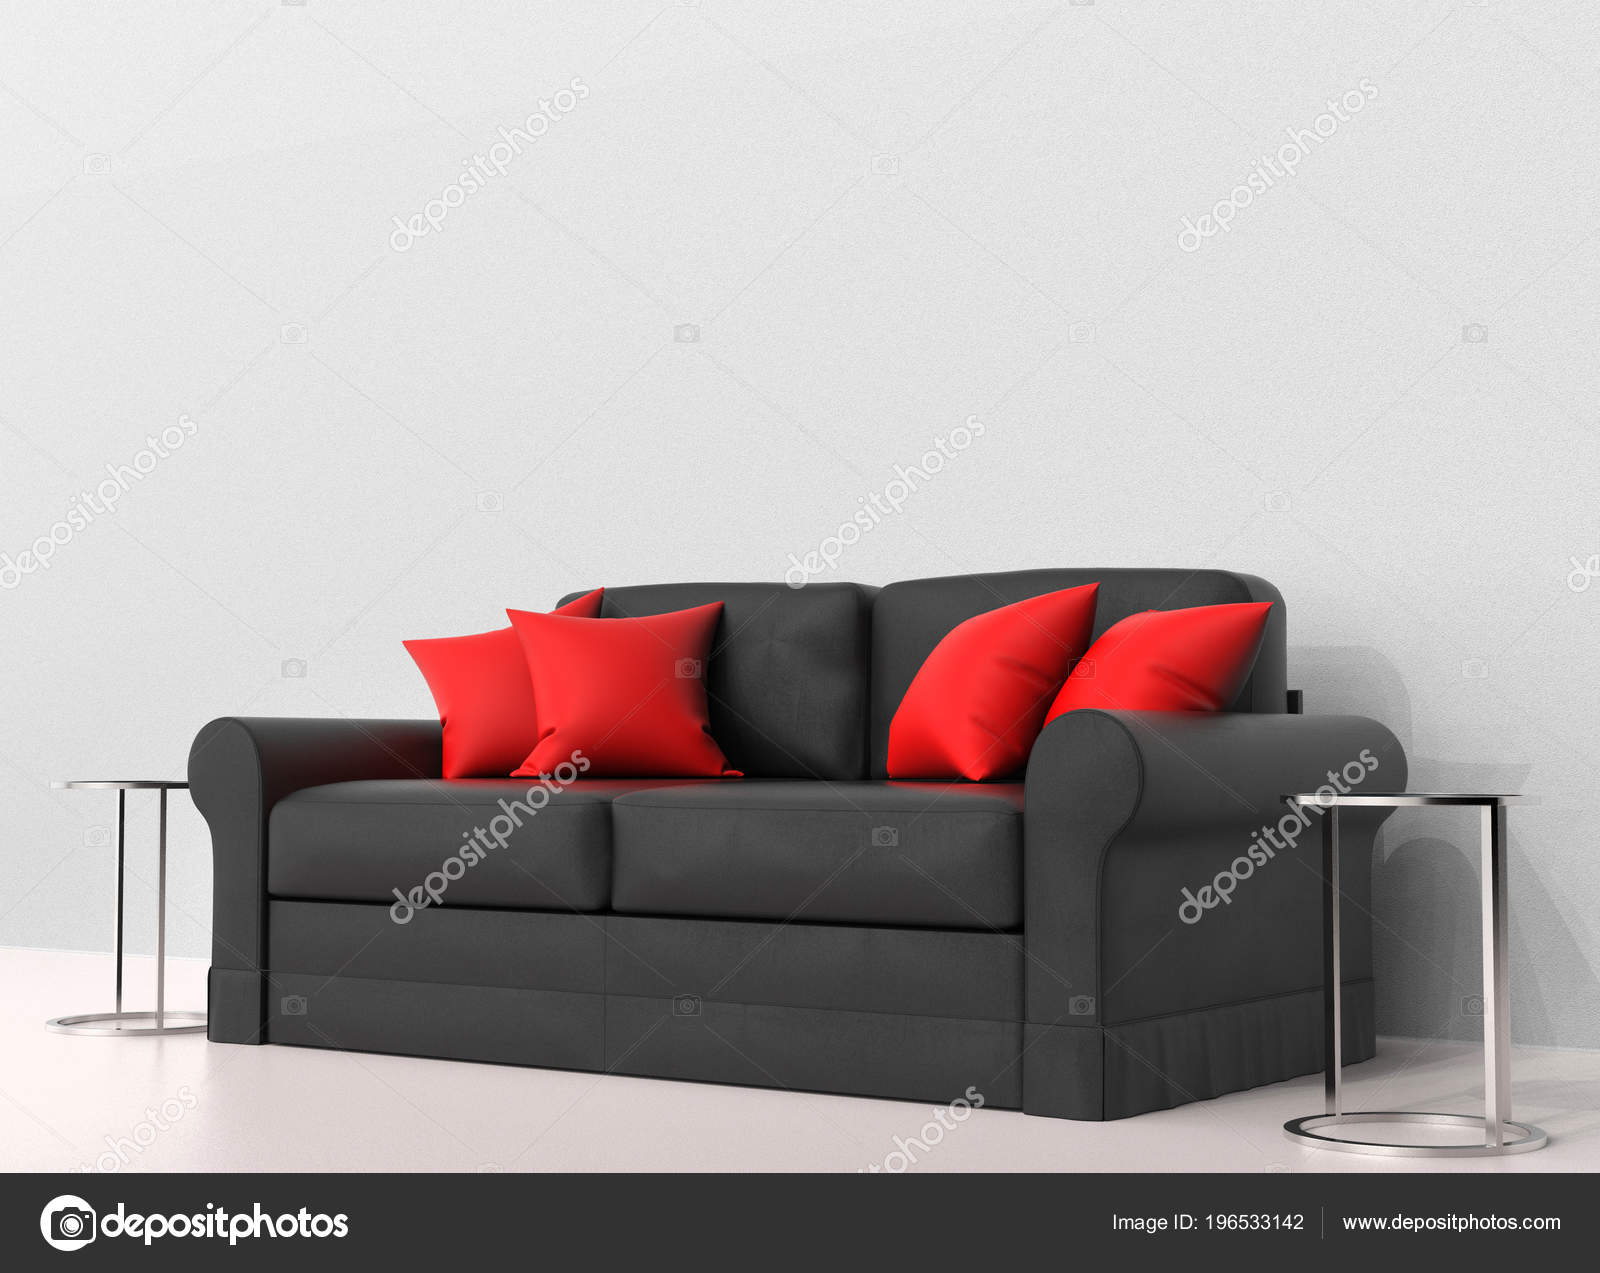 Black Sofa Red Pillows Two End Tables Sides Stock Photo